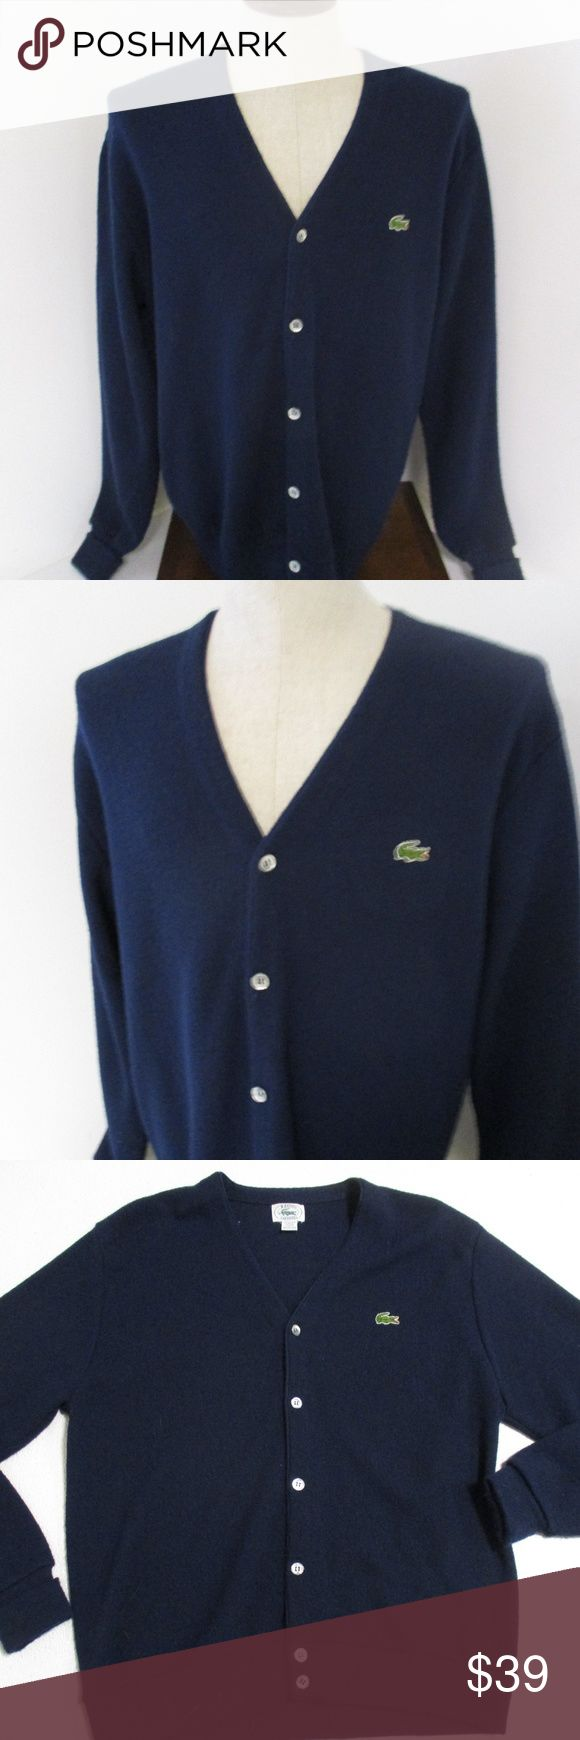 """Lacoste Vintage Orlon Men's Cardigan Sweater Large Dark blue     100% Orlon Acrylic     Alligator logo on the front     Cardigan style buttons in front     Very cool looking sweater in excellent condition    Chest- 23""""  Length- 29"""" Lacoste Sweaters Cardigan"""